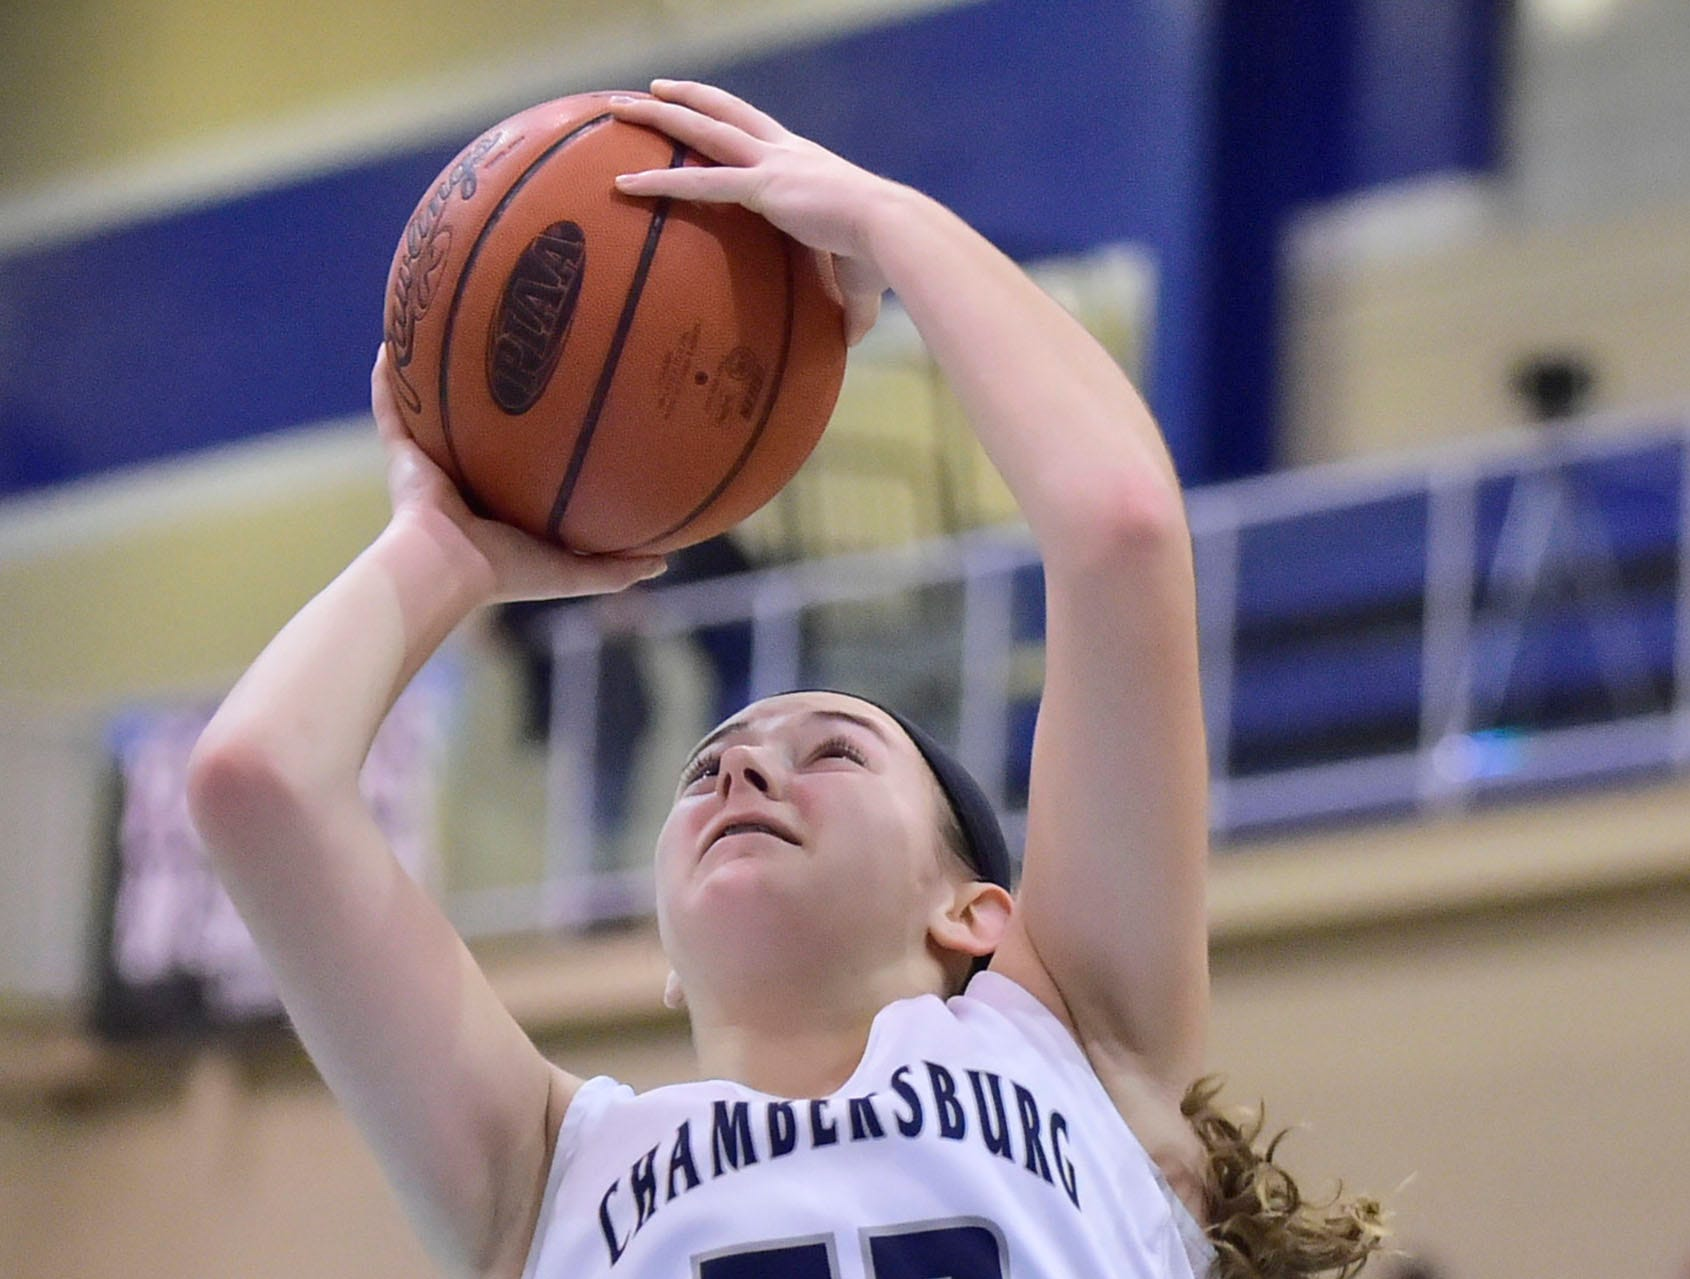 Chambersburg's Marlee Wrights (52) shoots for the Trojans. Chambersburg played James Buchanan girls during the Franklin County Tip-Off Tournament, Friday, Dec. 7, 2018.